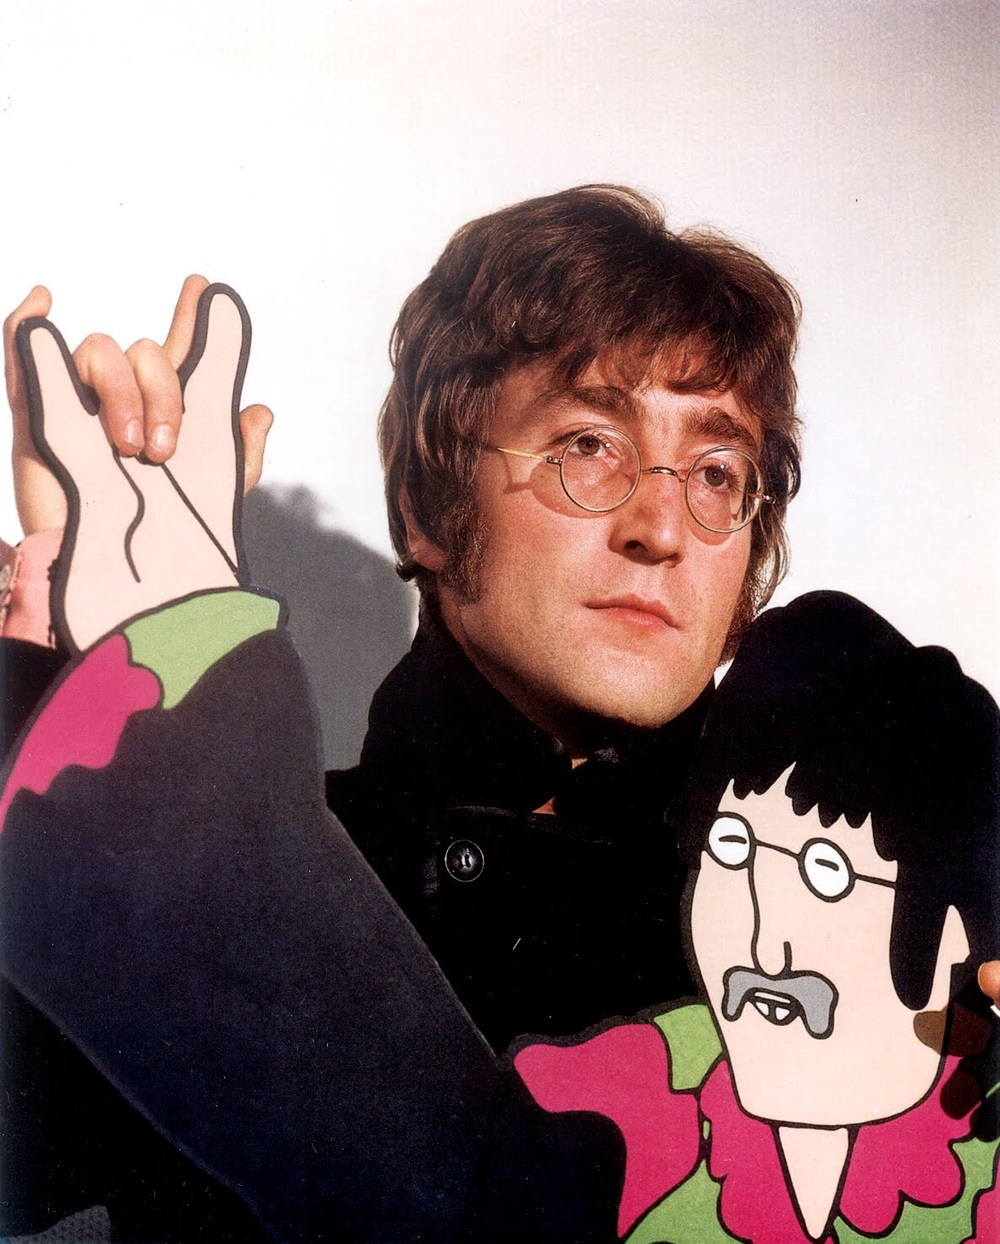 John Lennon  promoting Yellow Submarine with his cardboard cutout, 1968.